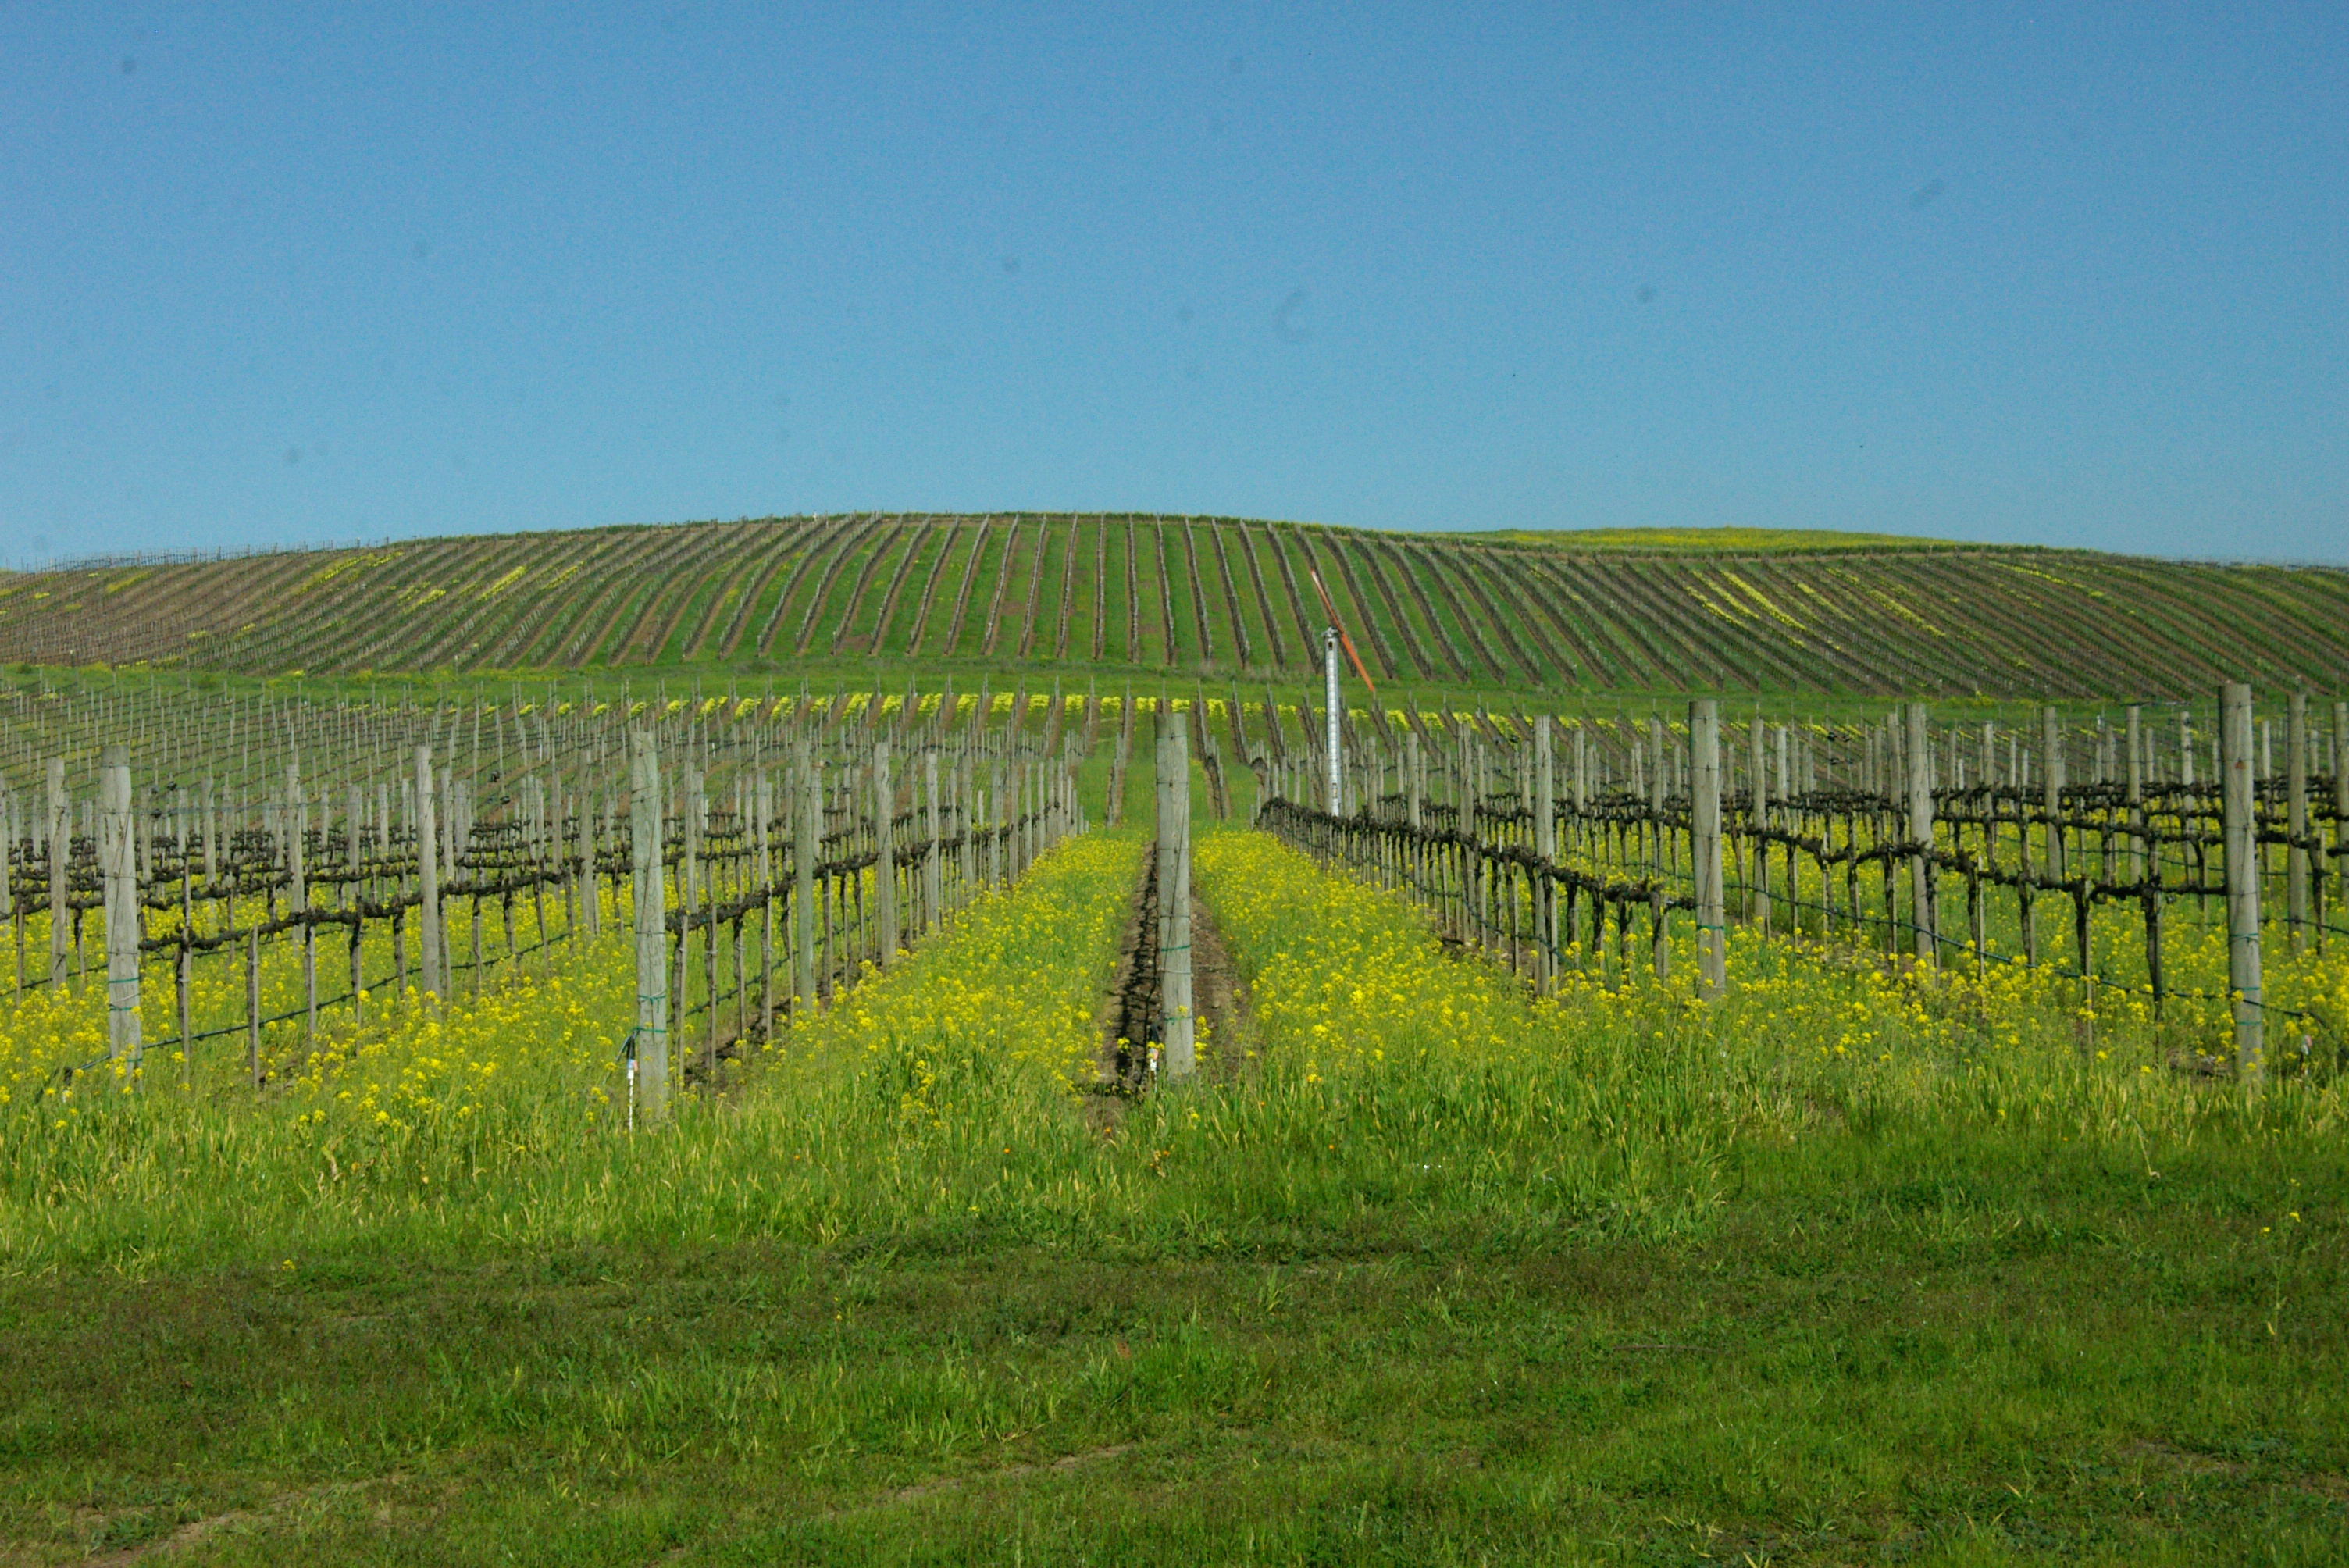 View of Sonoma Valley vineyards during the spring with yellow mustard flowers